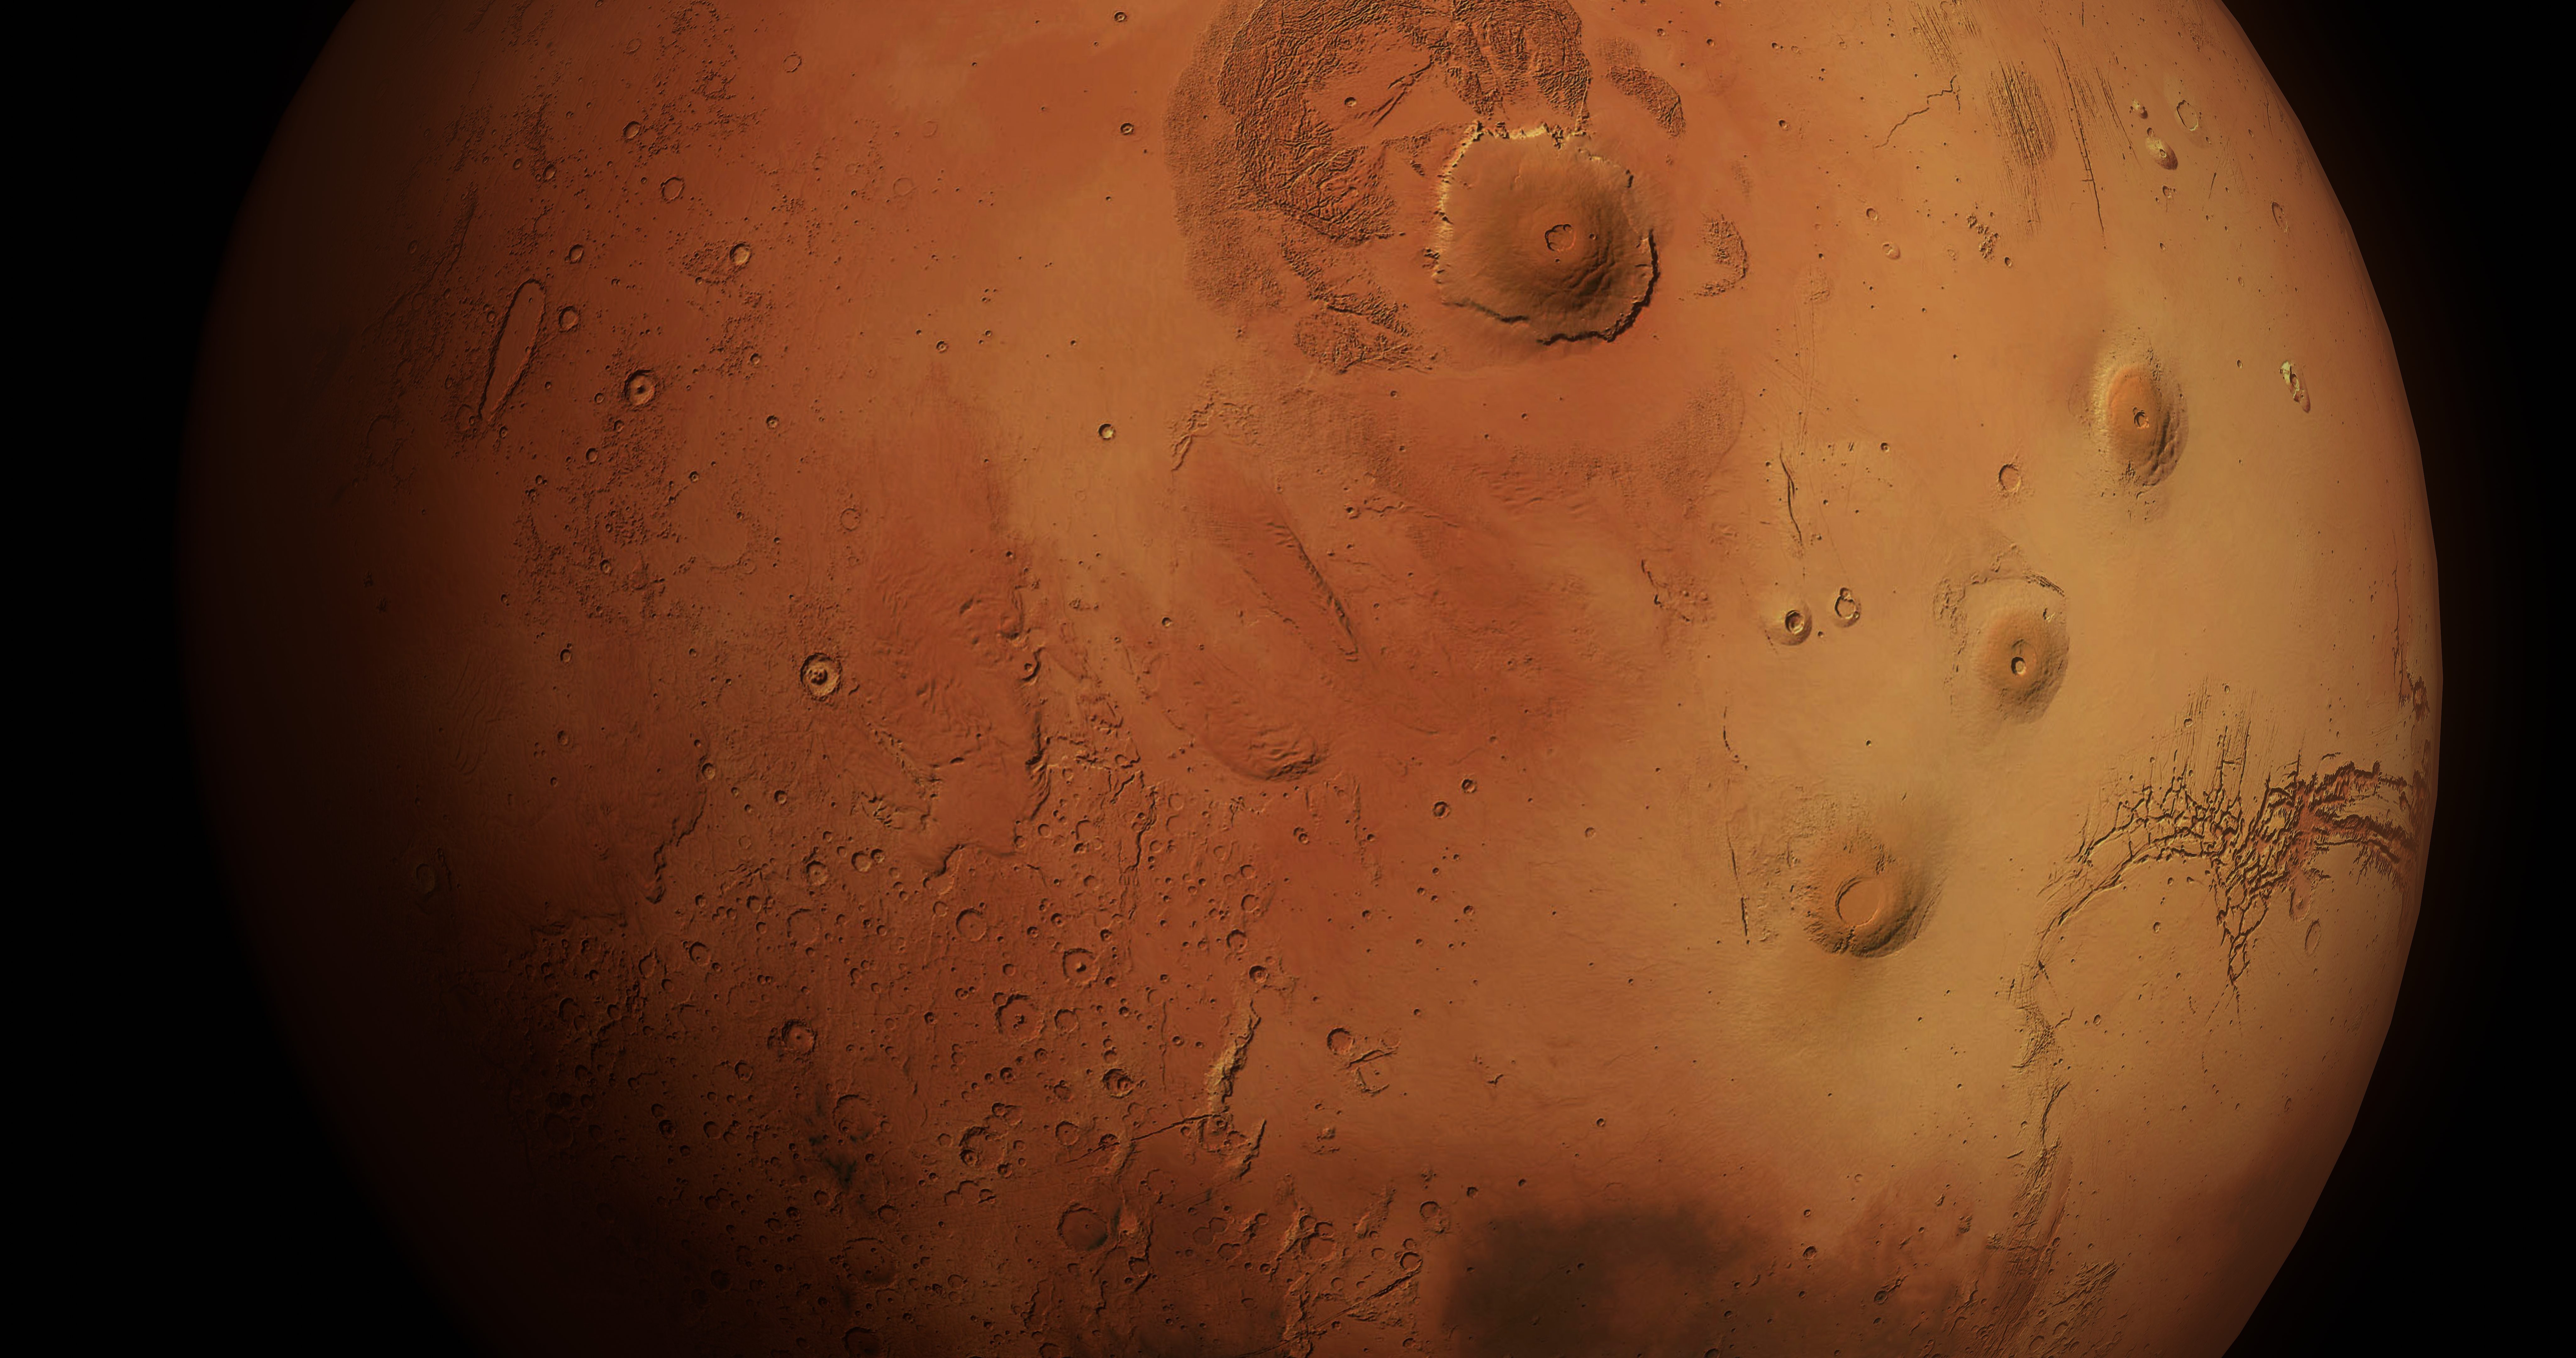 mars 8k 3d model 3ds fbx blend dae obj 215109